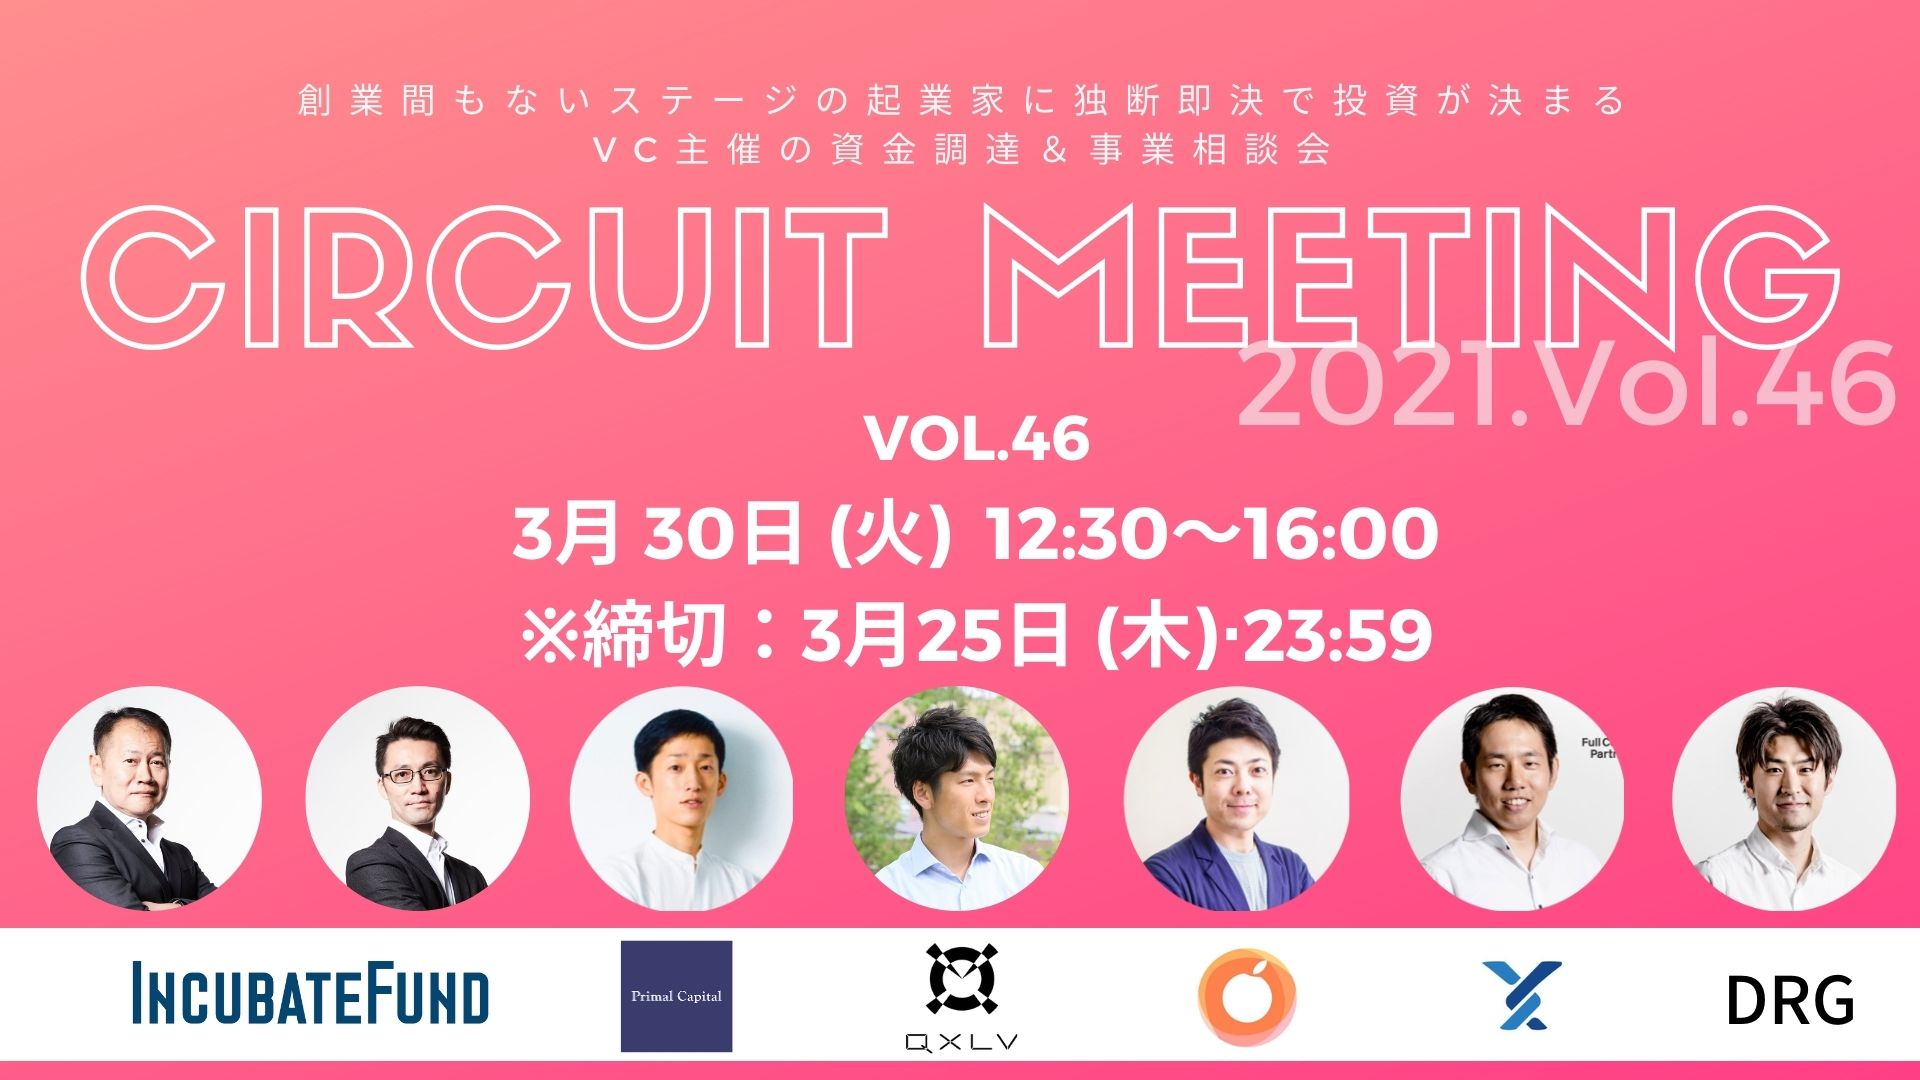 【3/25締切】Circuit Meeting Vol.46